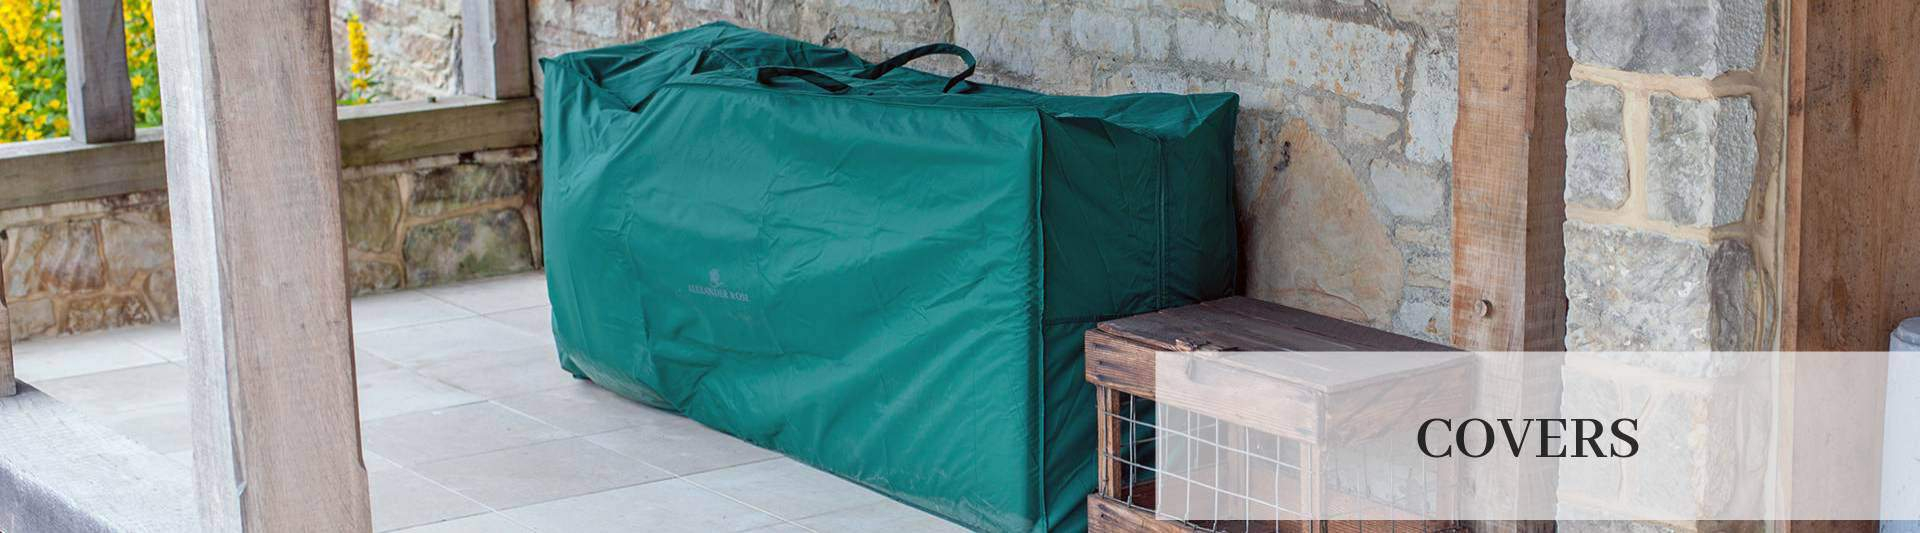 Garden Furniture Covers with regard to dimensions 1920 X 533